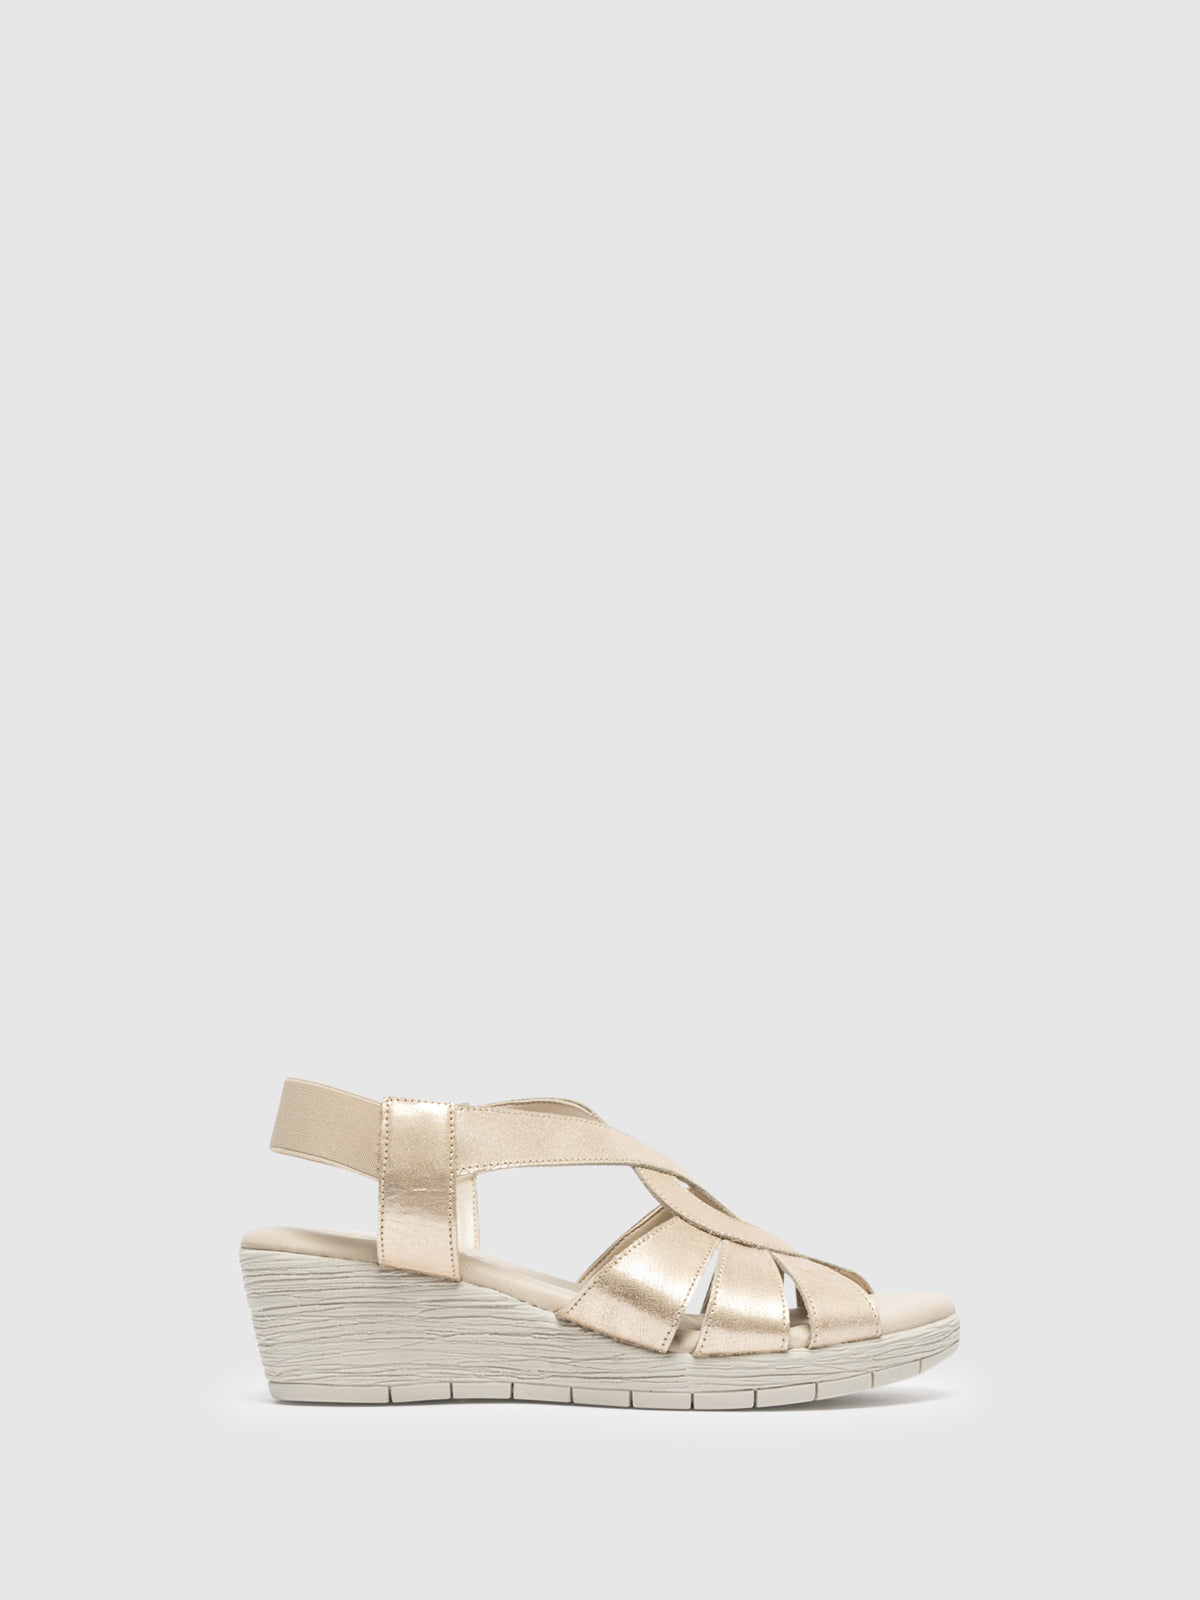 The Flexx Gold Wedge Sandals